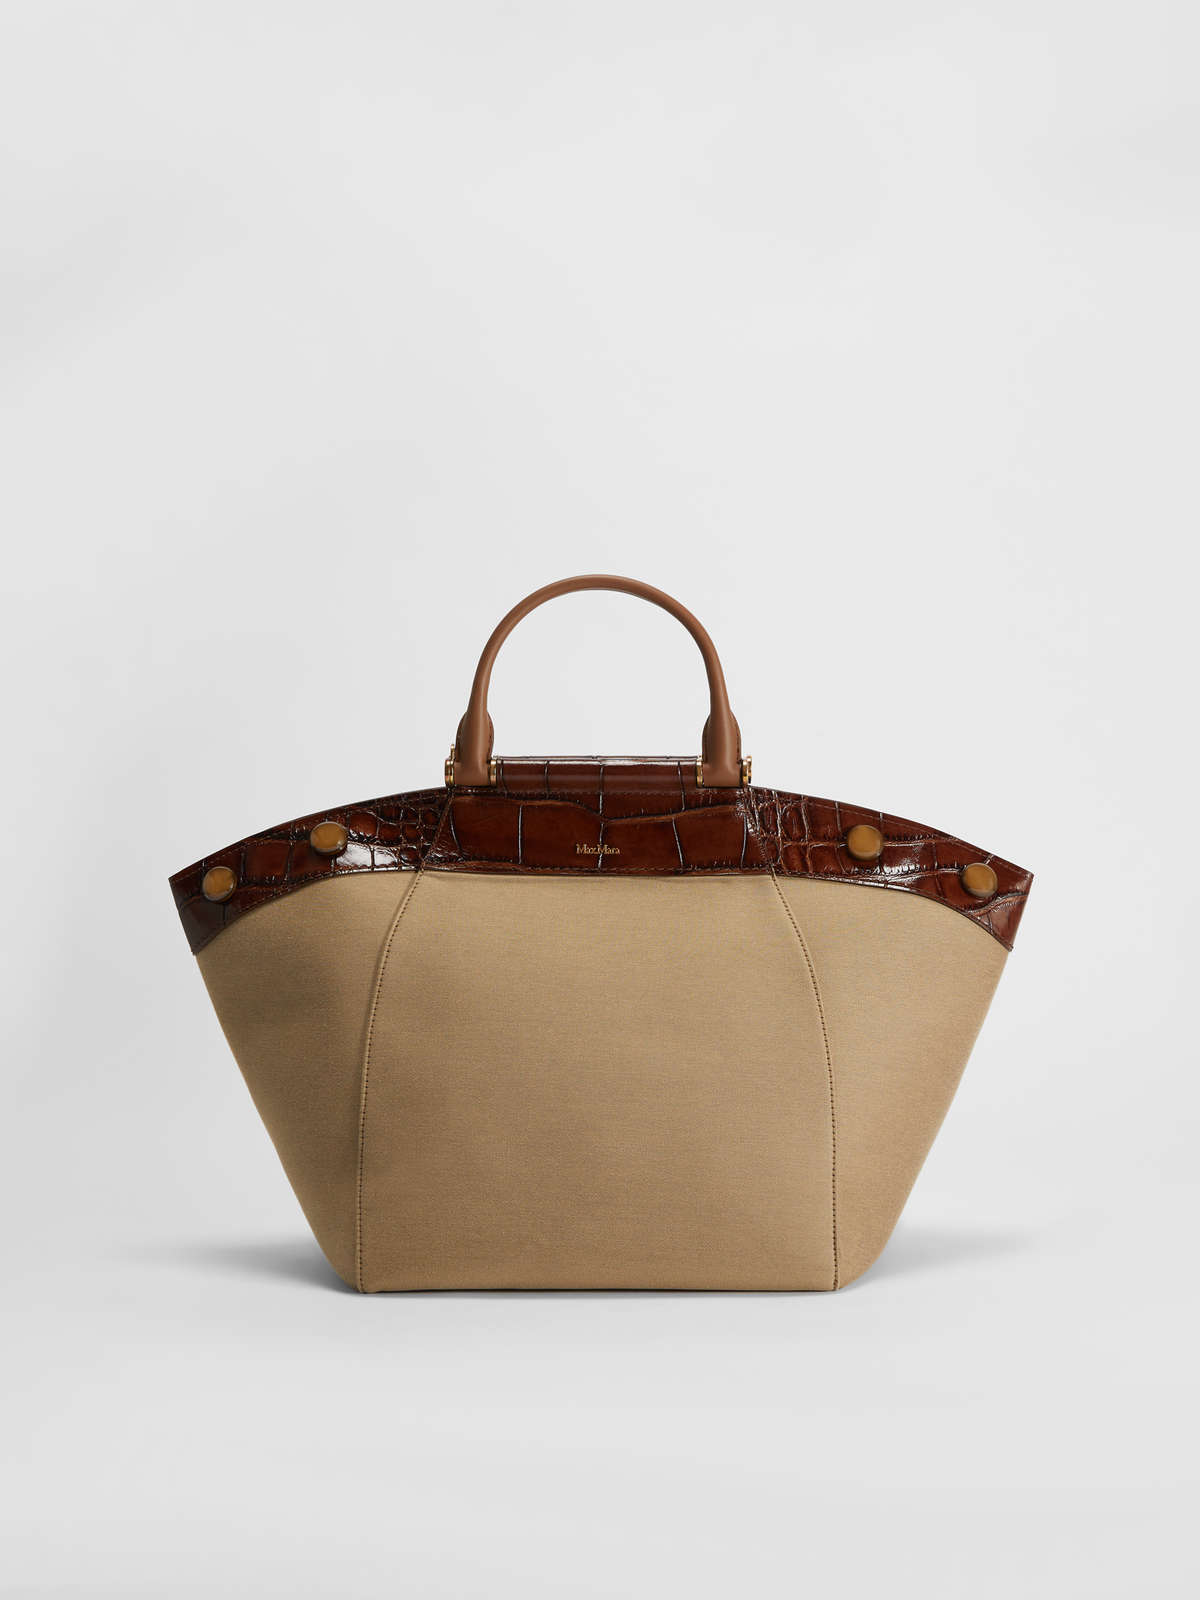 Tote Bag in leather and fabric - Max Mara